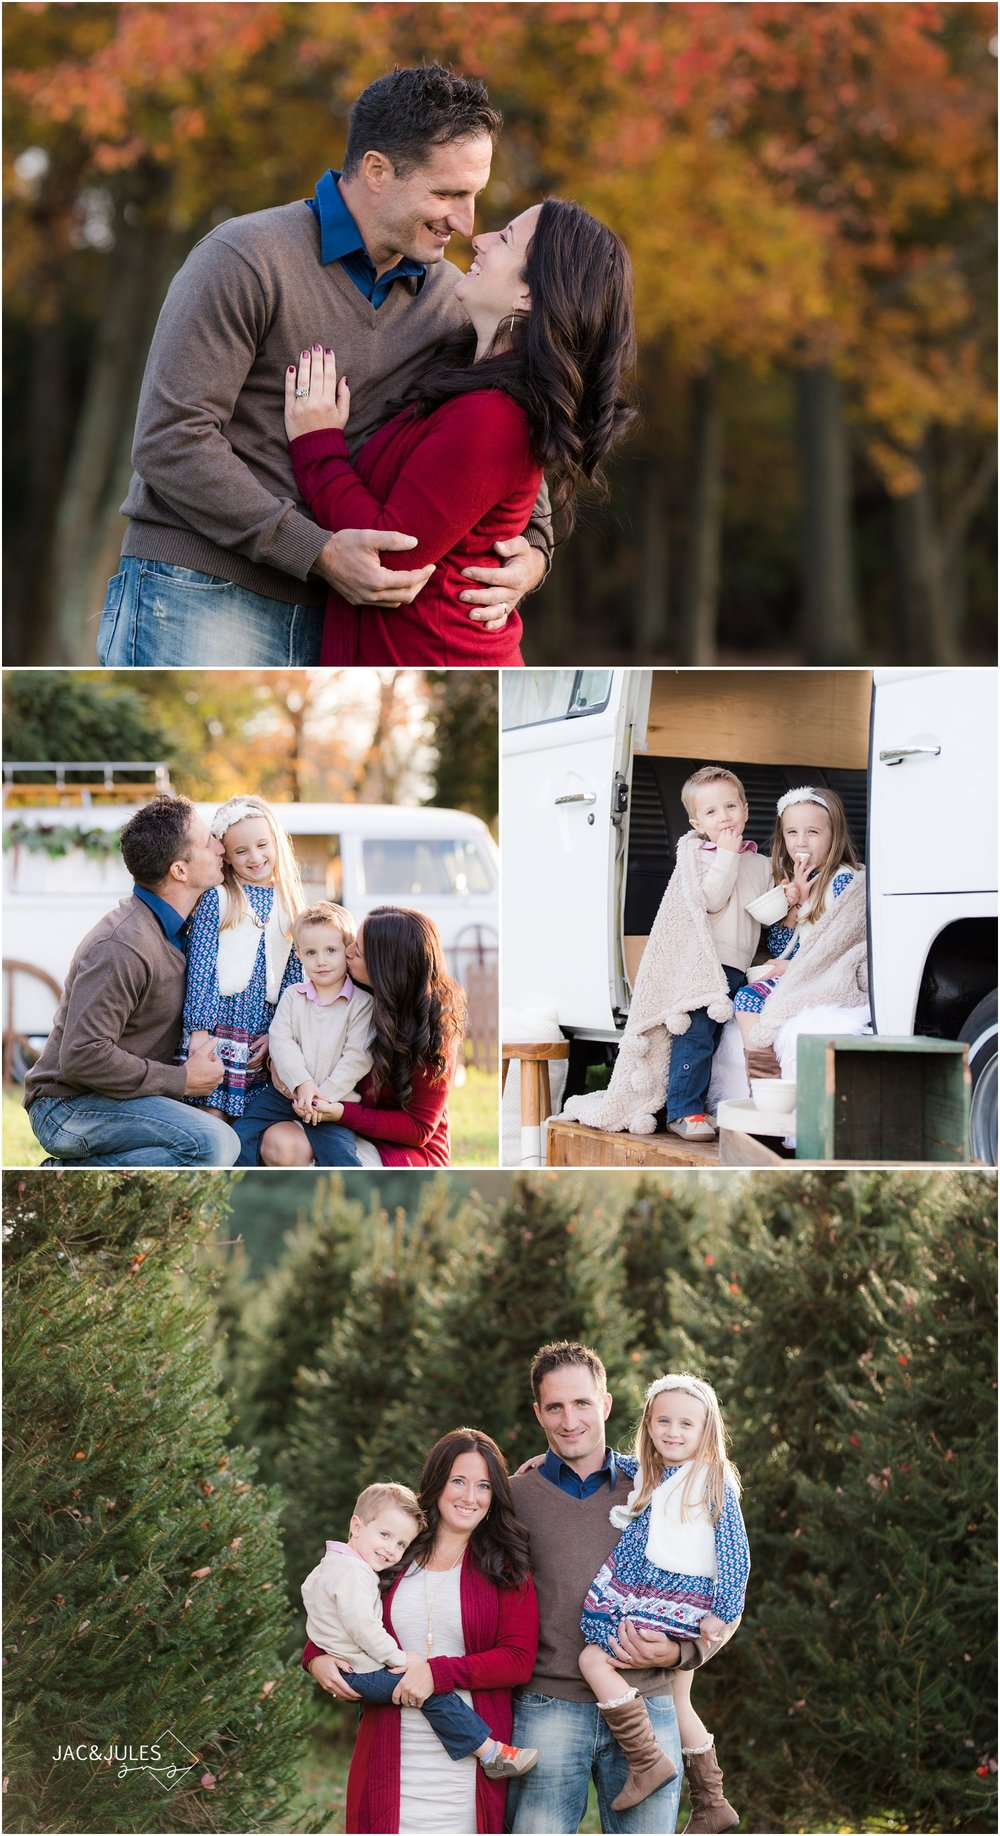 fun family holiday photos with vintage VW bus in Freehold, NJ.